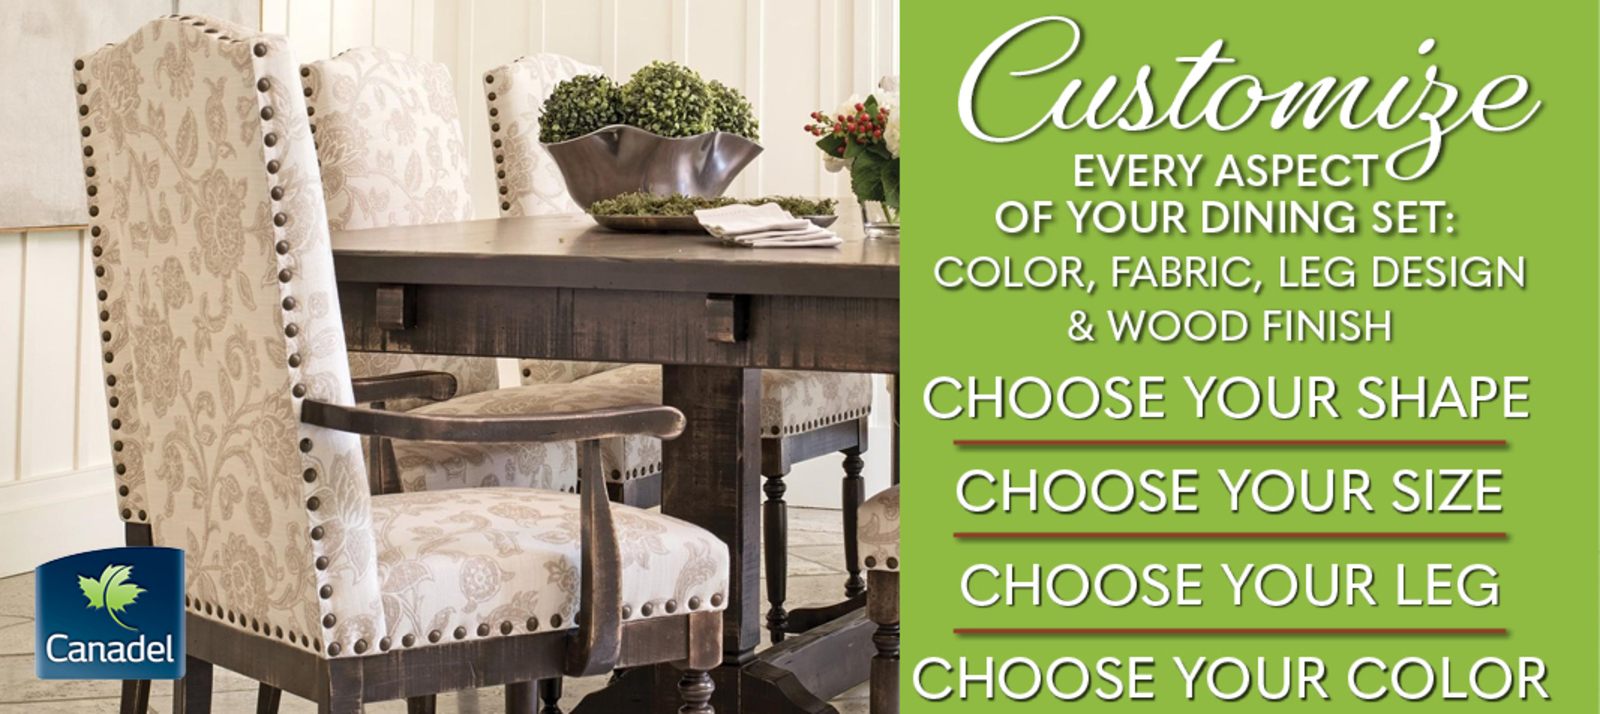 Canadel Customize Your Dining Set